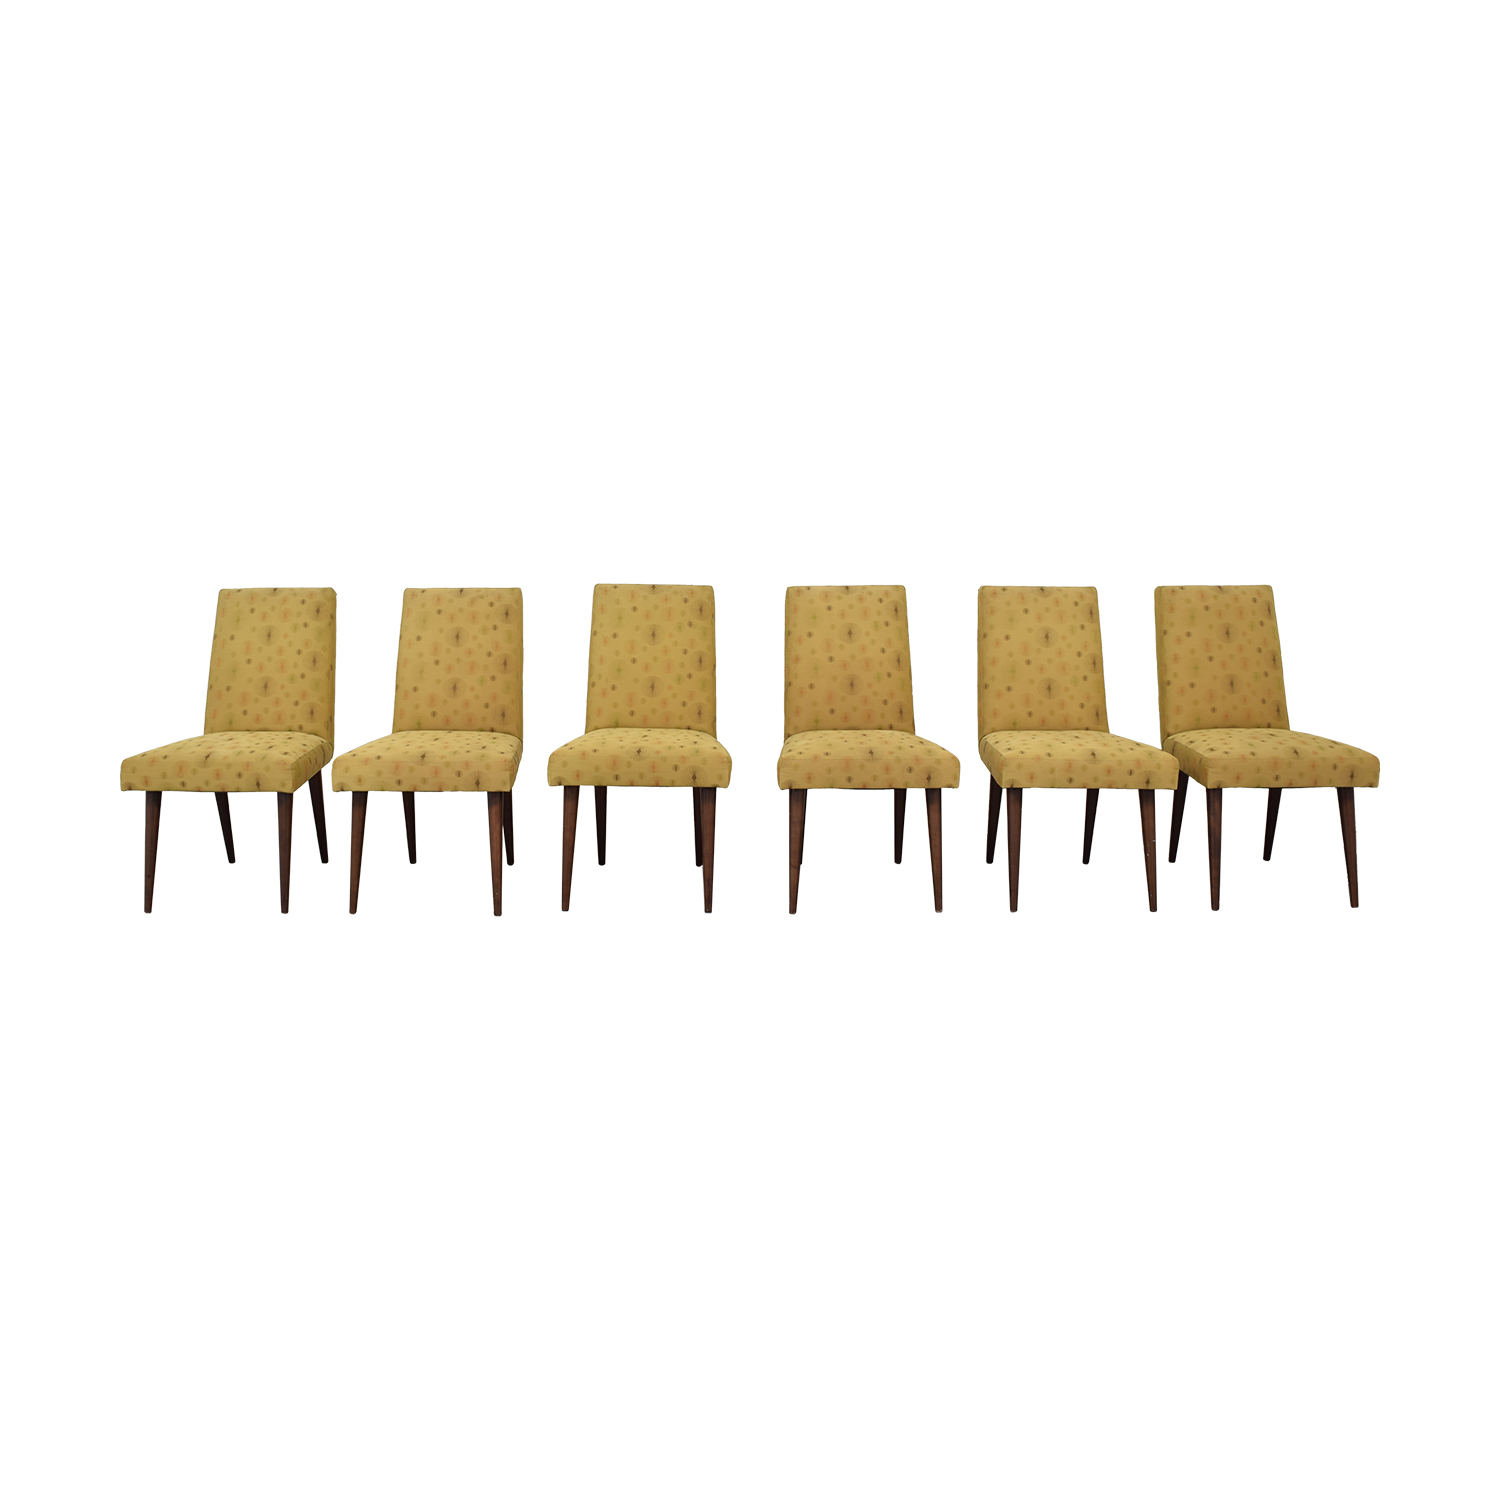 Room & Board Multi-Colored Dining Chairs / Sofas